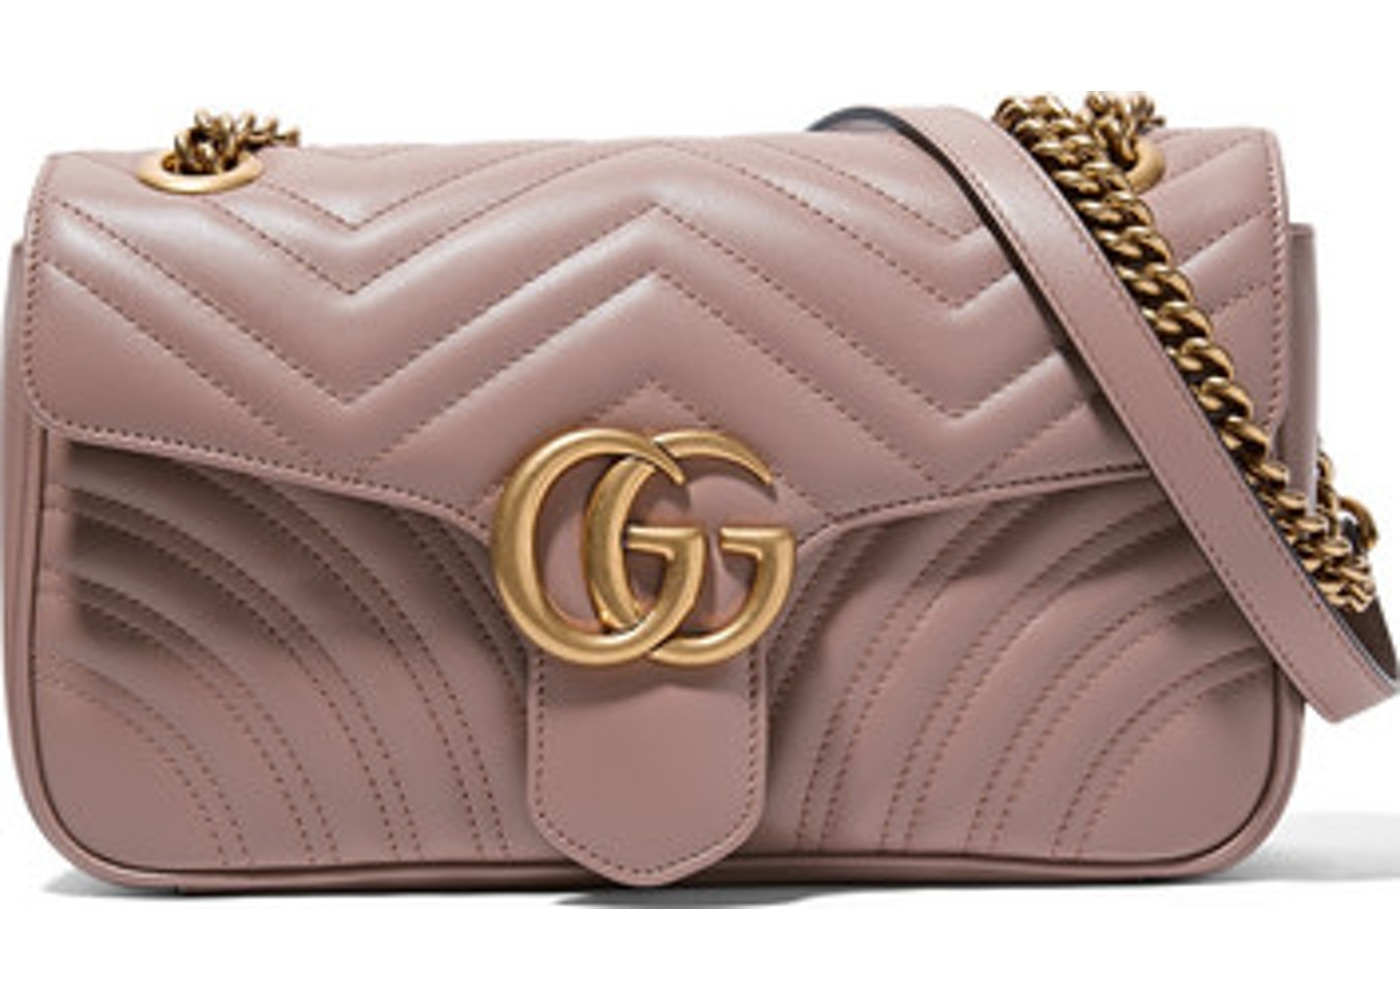 f69655ee9fa7 Gucci Marmont Matelasse GG Small Porcelain Rose